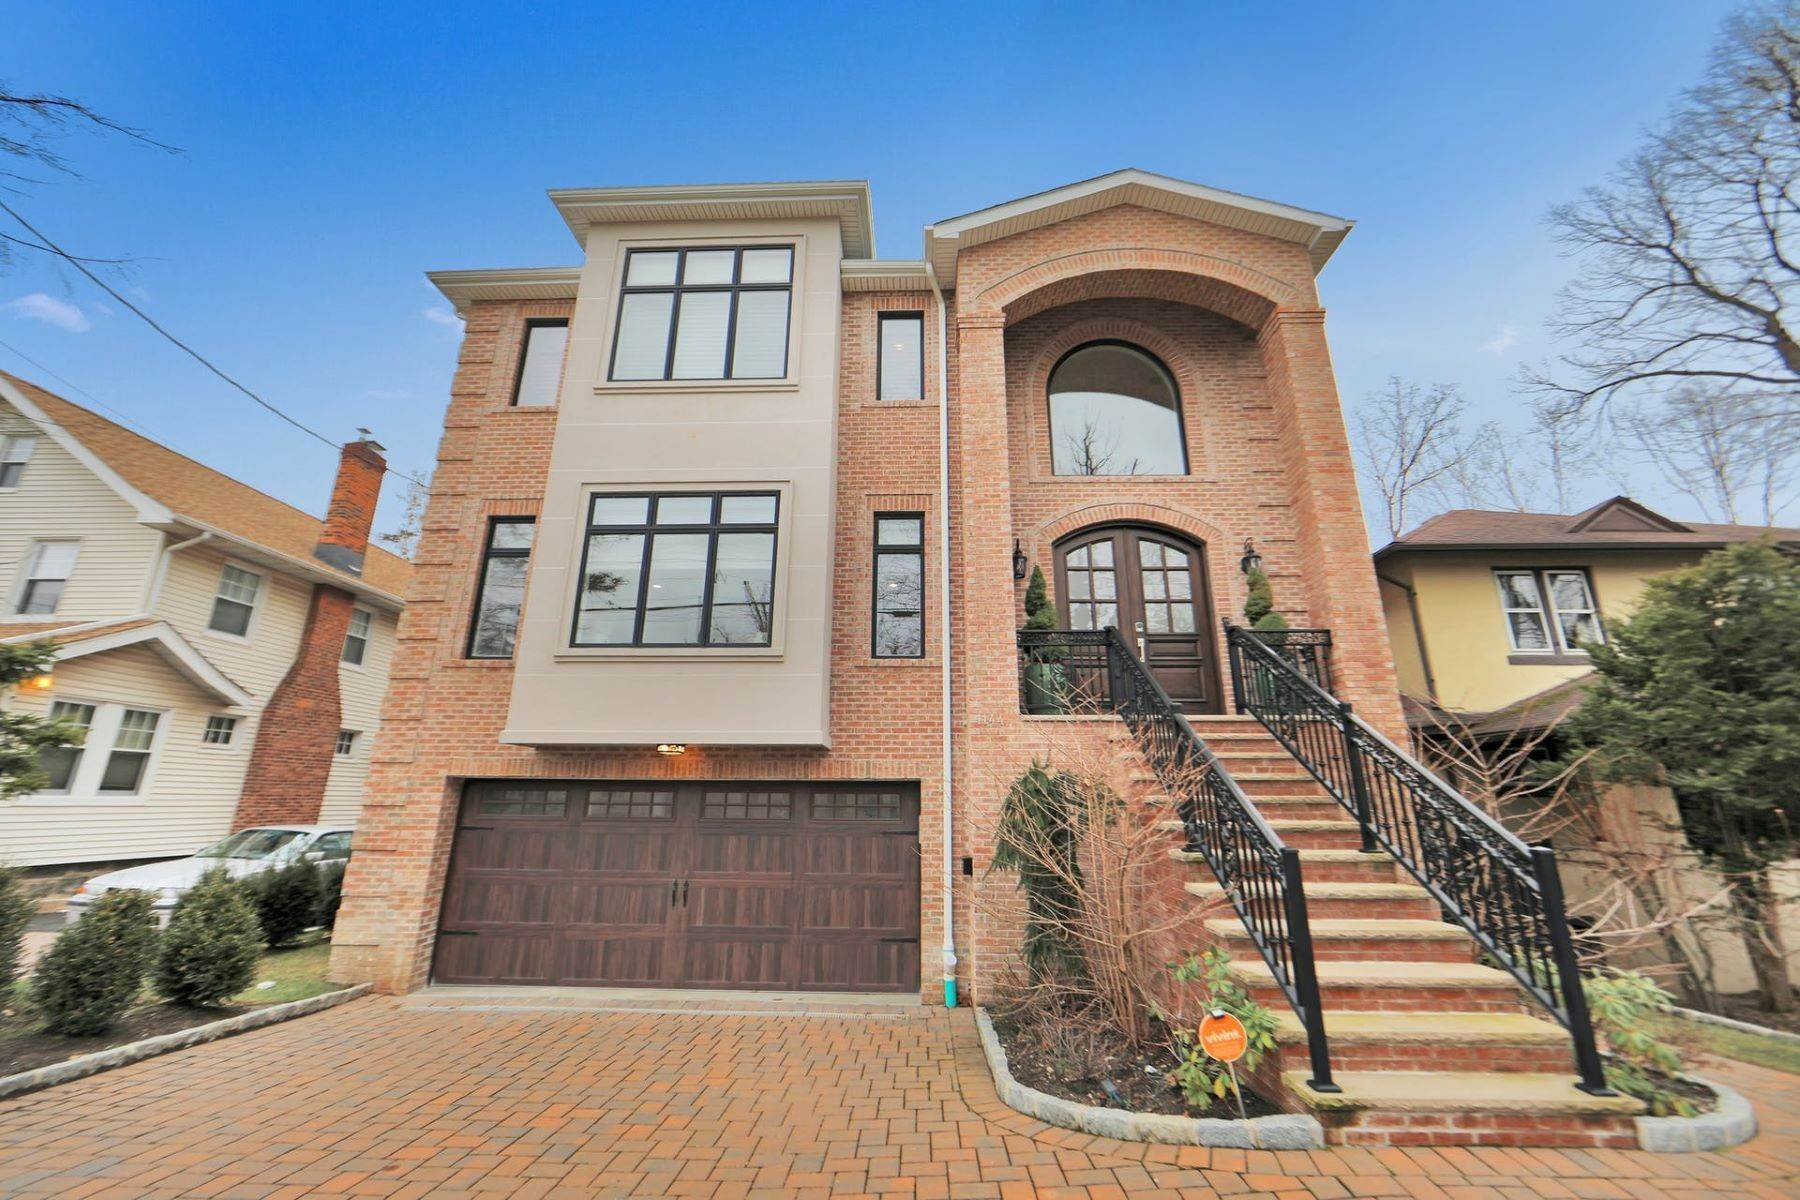 Single Family Homes için Satış at Location! Location! 1144 Abbott Blvd Fort Lee, New Jersey 07024 Amerika Birleşik Devletleri